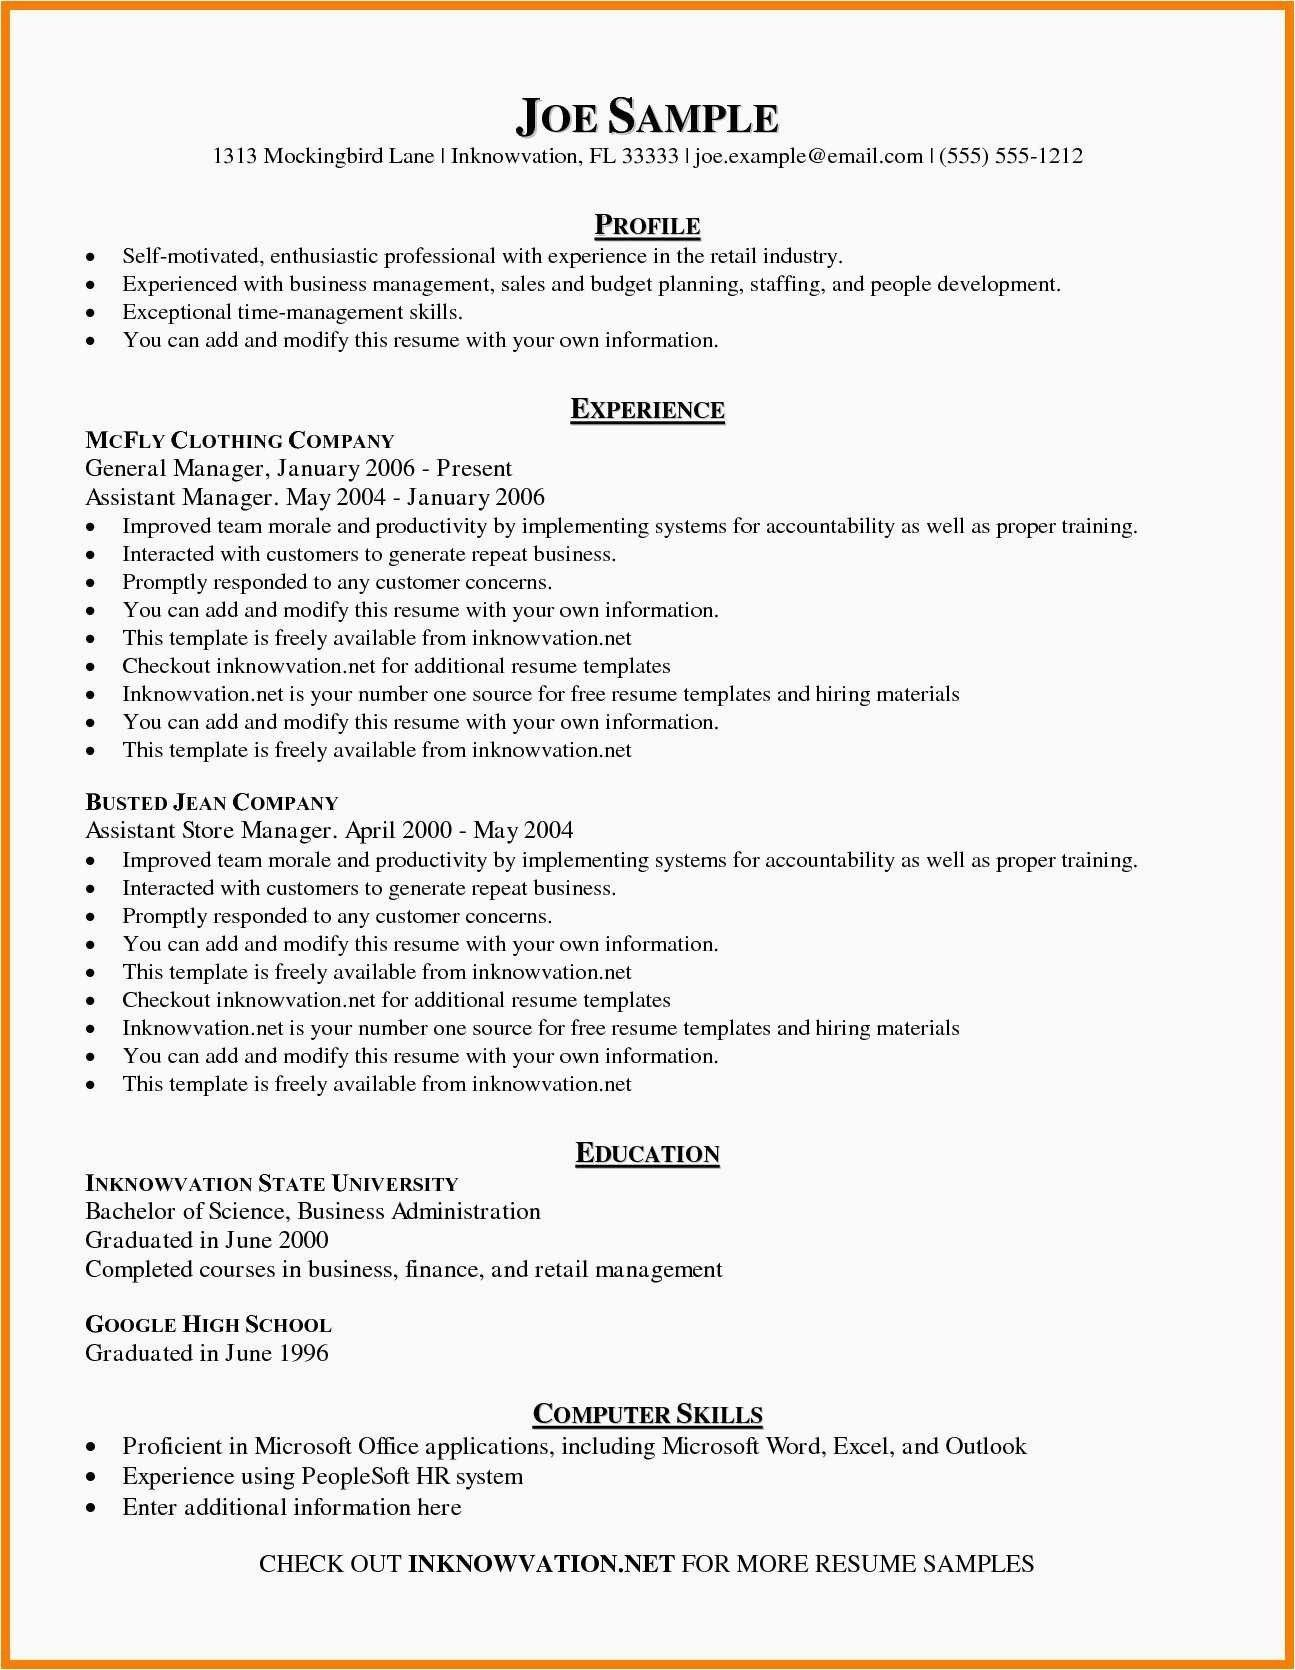 Where To Find A Resume Examples Office Basic Resume Examples Basic Resume Resume Examples